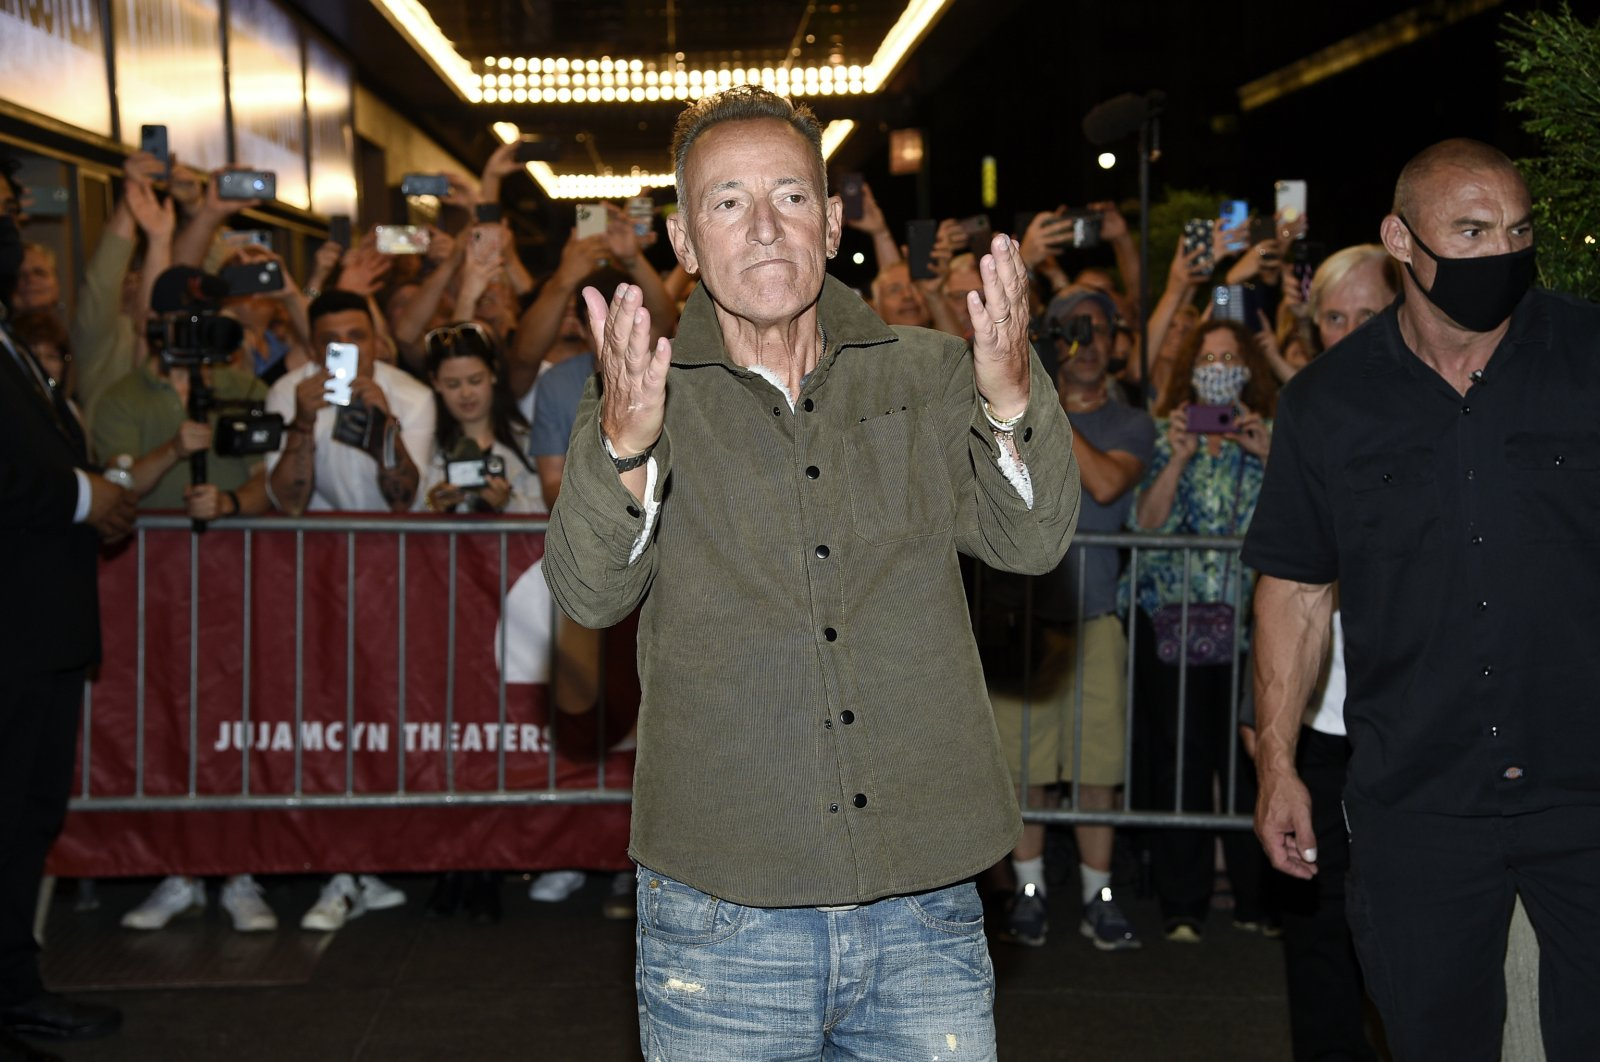 """Singer-songwriter Bruce Springsteen exits the stage door after the """"Springsteen On Broadway"""" reopening night performance at the Saint James Theater in New York, U.S., June 26, 2021. (AP Photo)"""